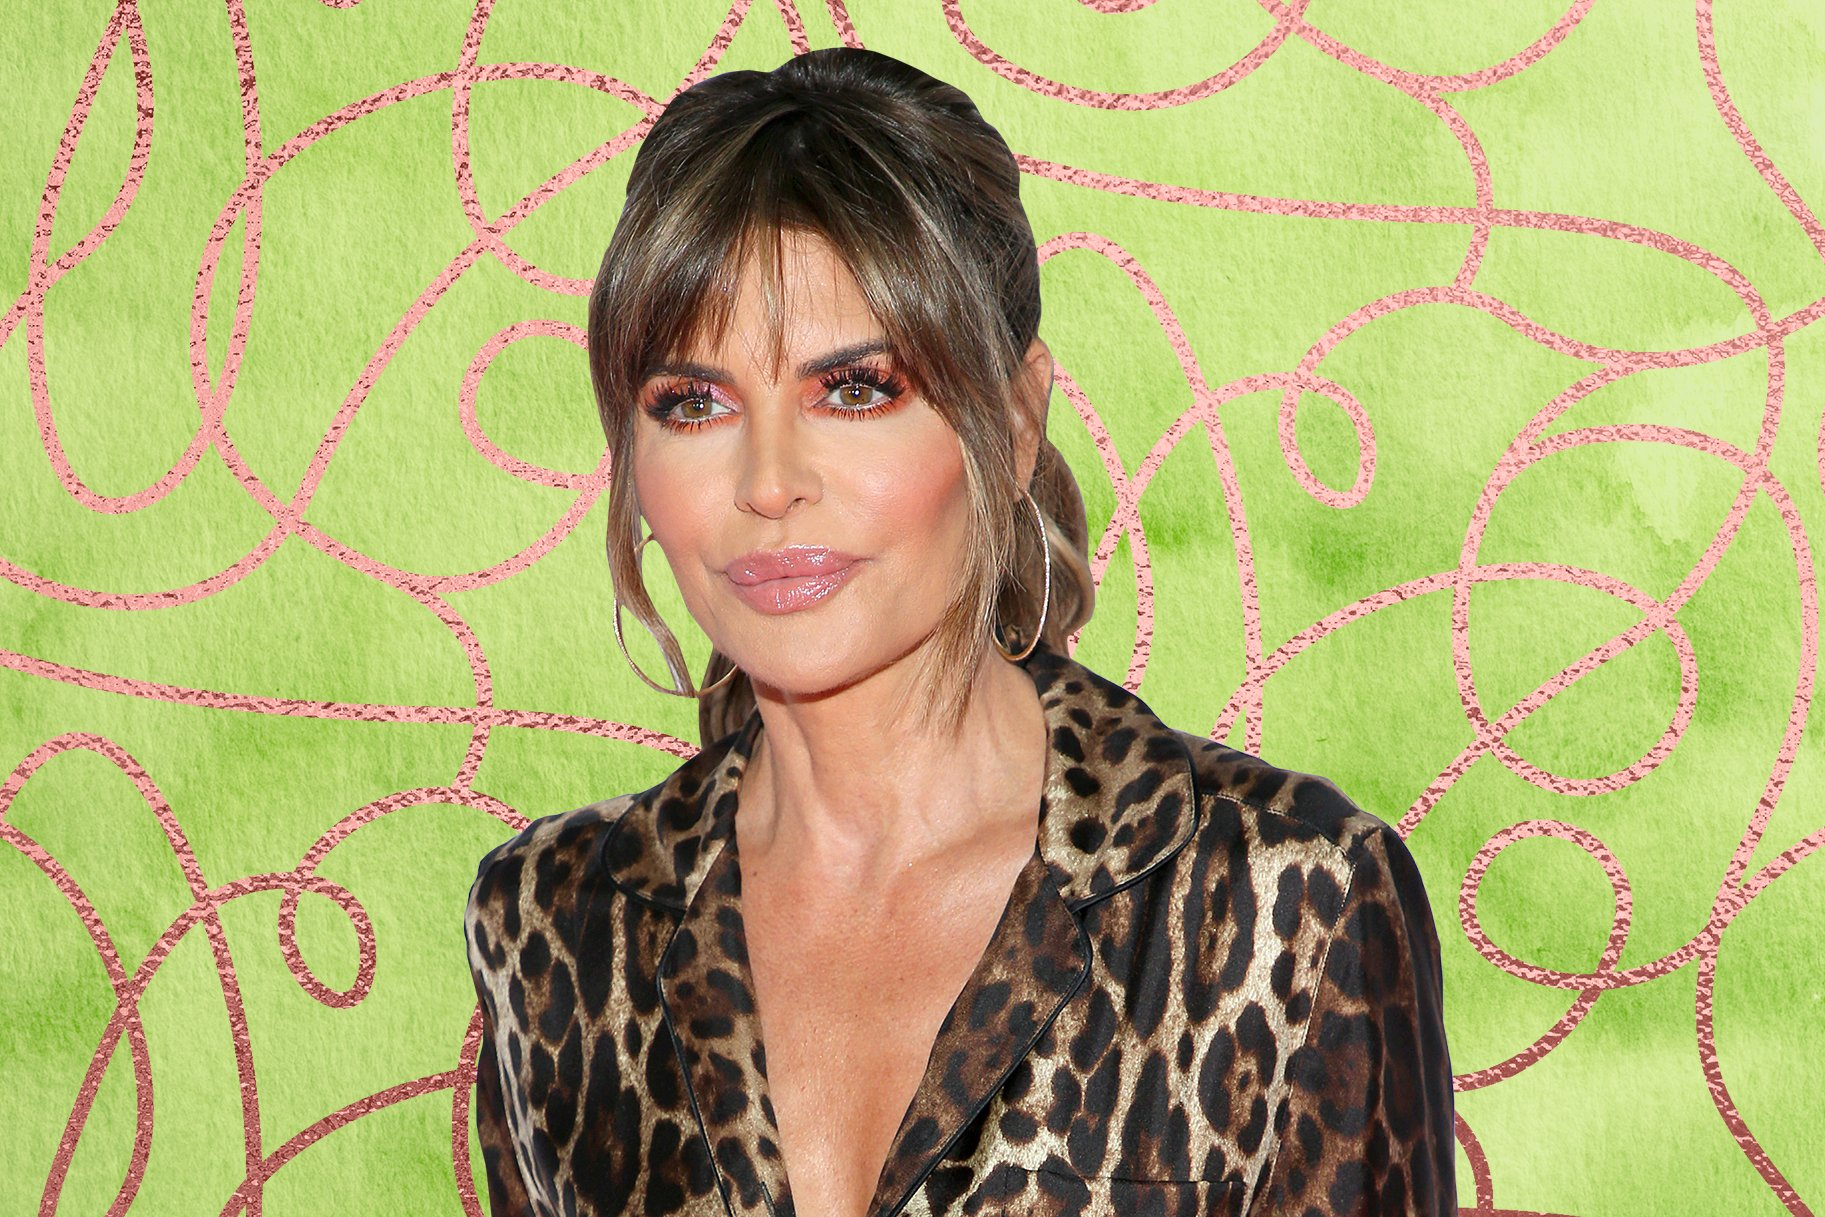 Petition To Remove Lisa Rinna From RHOBH Reaches 2,000 Signatures — Here's Why Some Fans Want Her Gone!